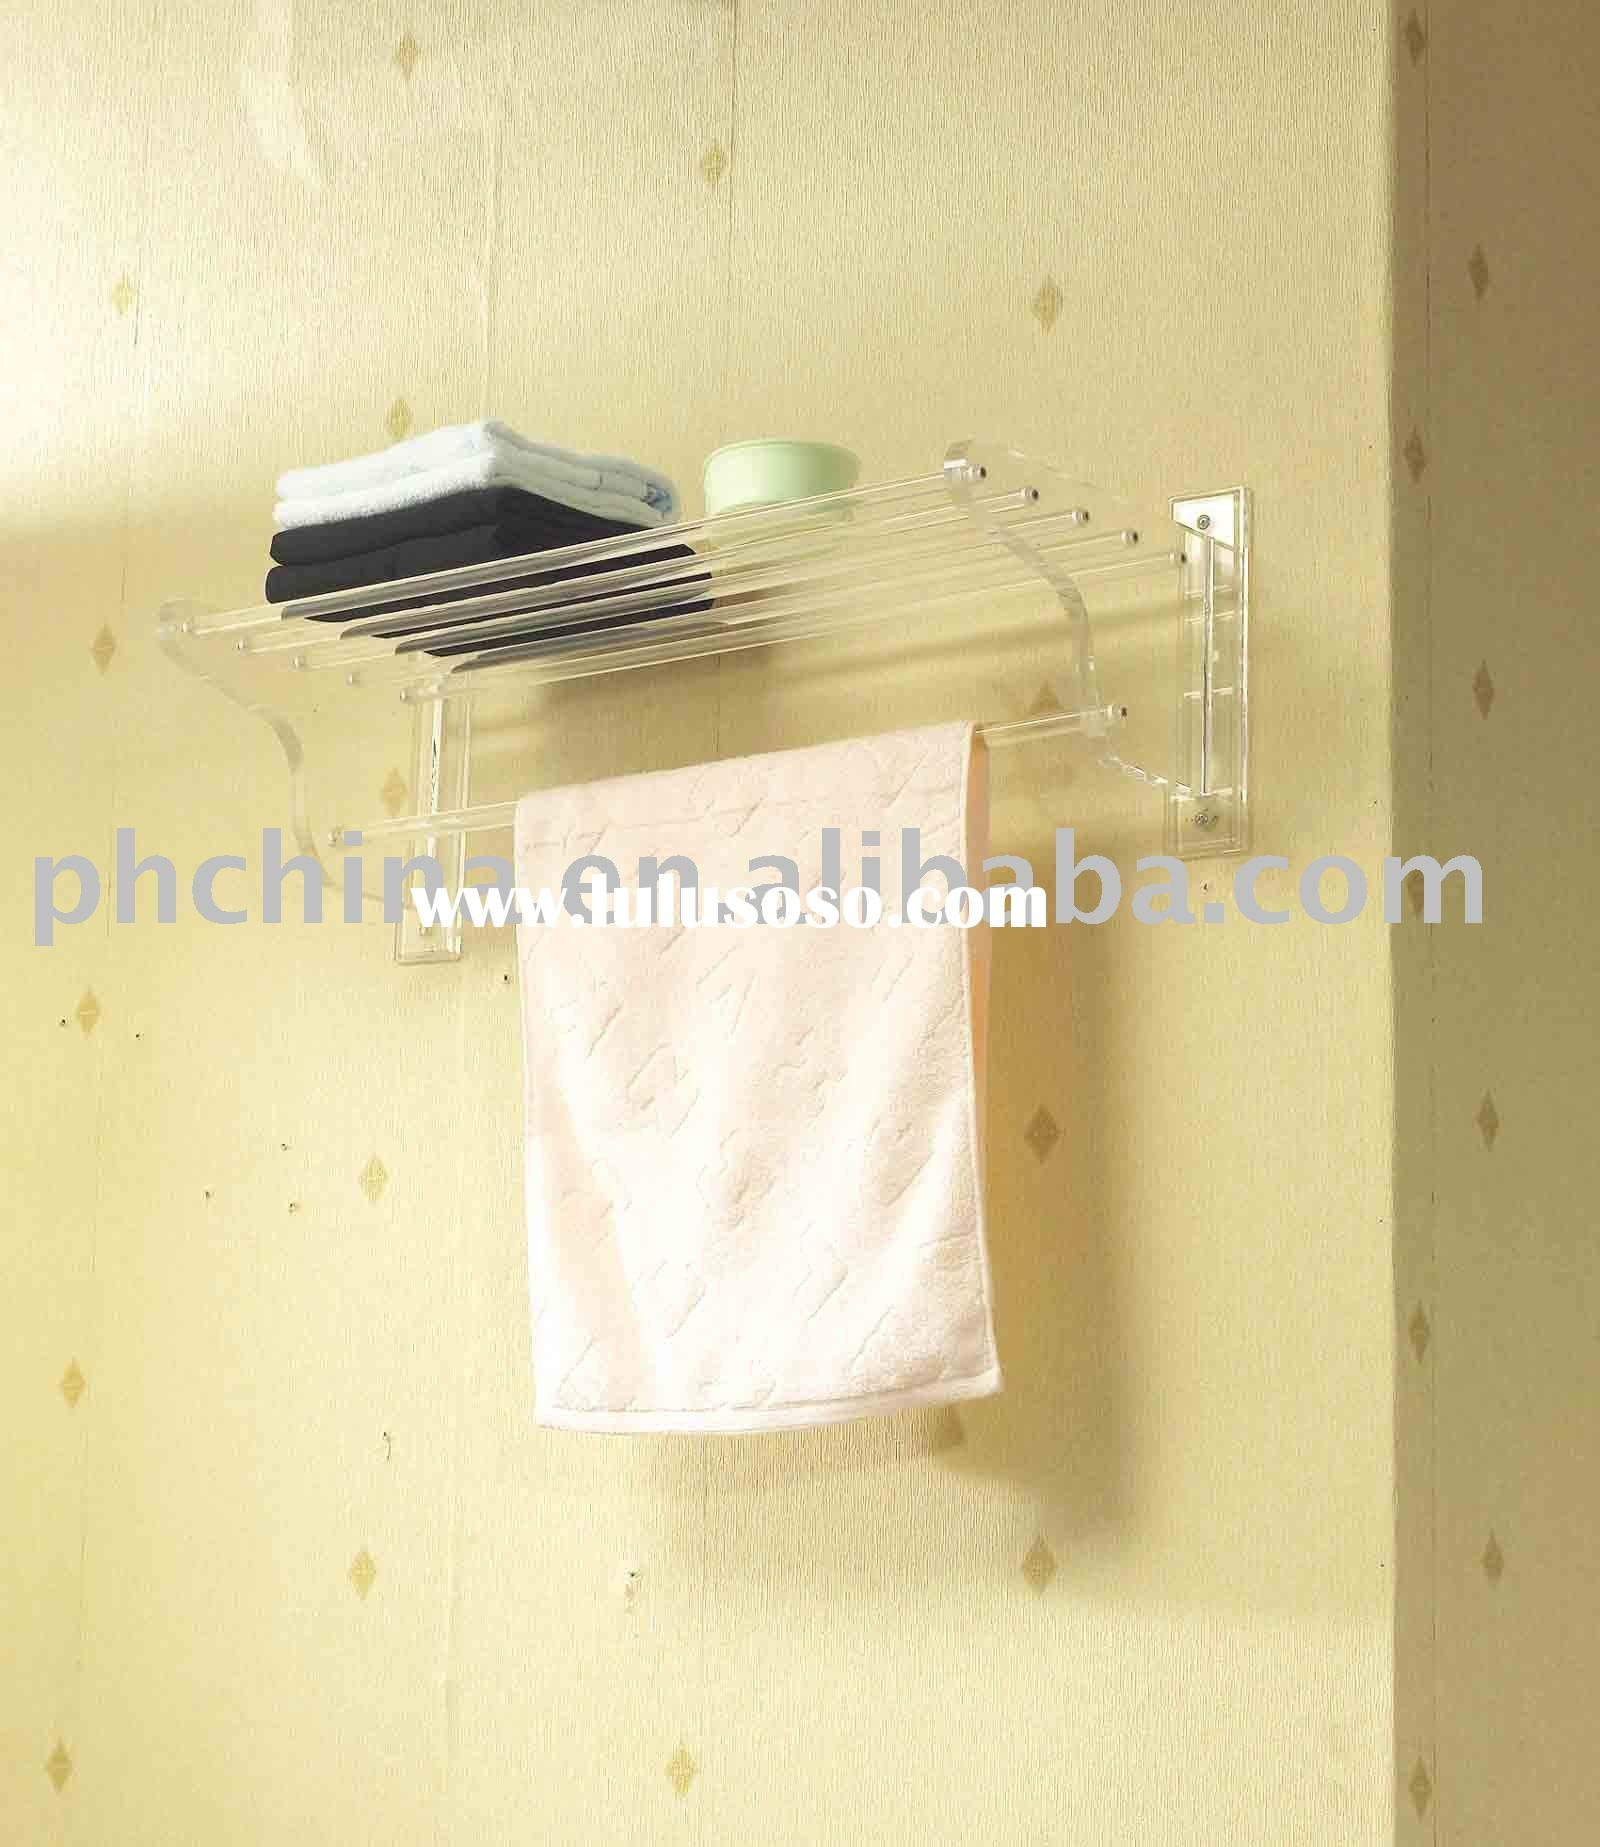 Acrylic Bathroom Shelf;Acrylic Towel Rack;Acrylic Bathroom Accessories